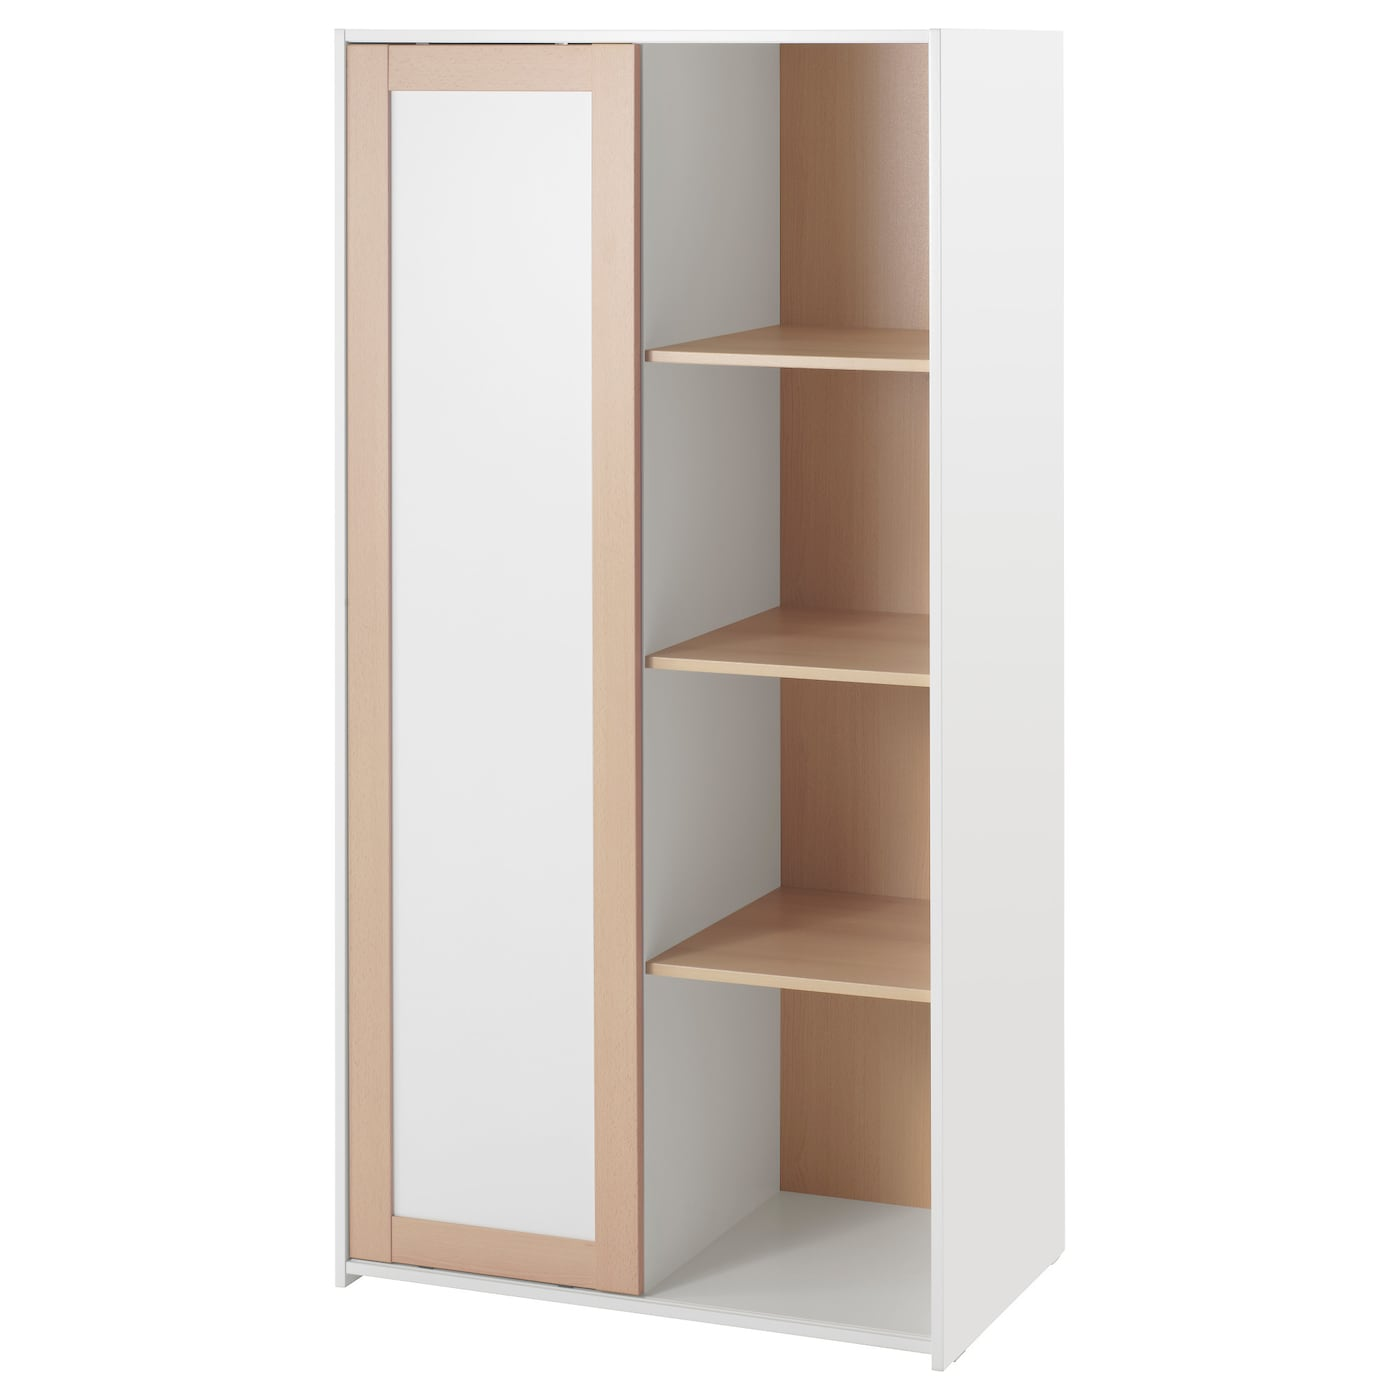 sniglar wardrobe beech white 81 x 50 x 163 cm ikea. Black Bedroom Furniture Sets. Home Design Ideas